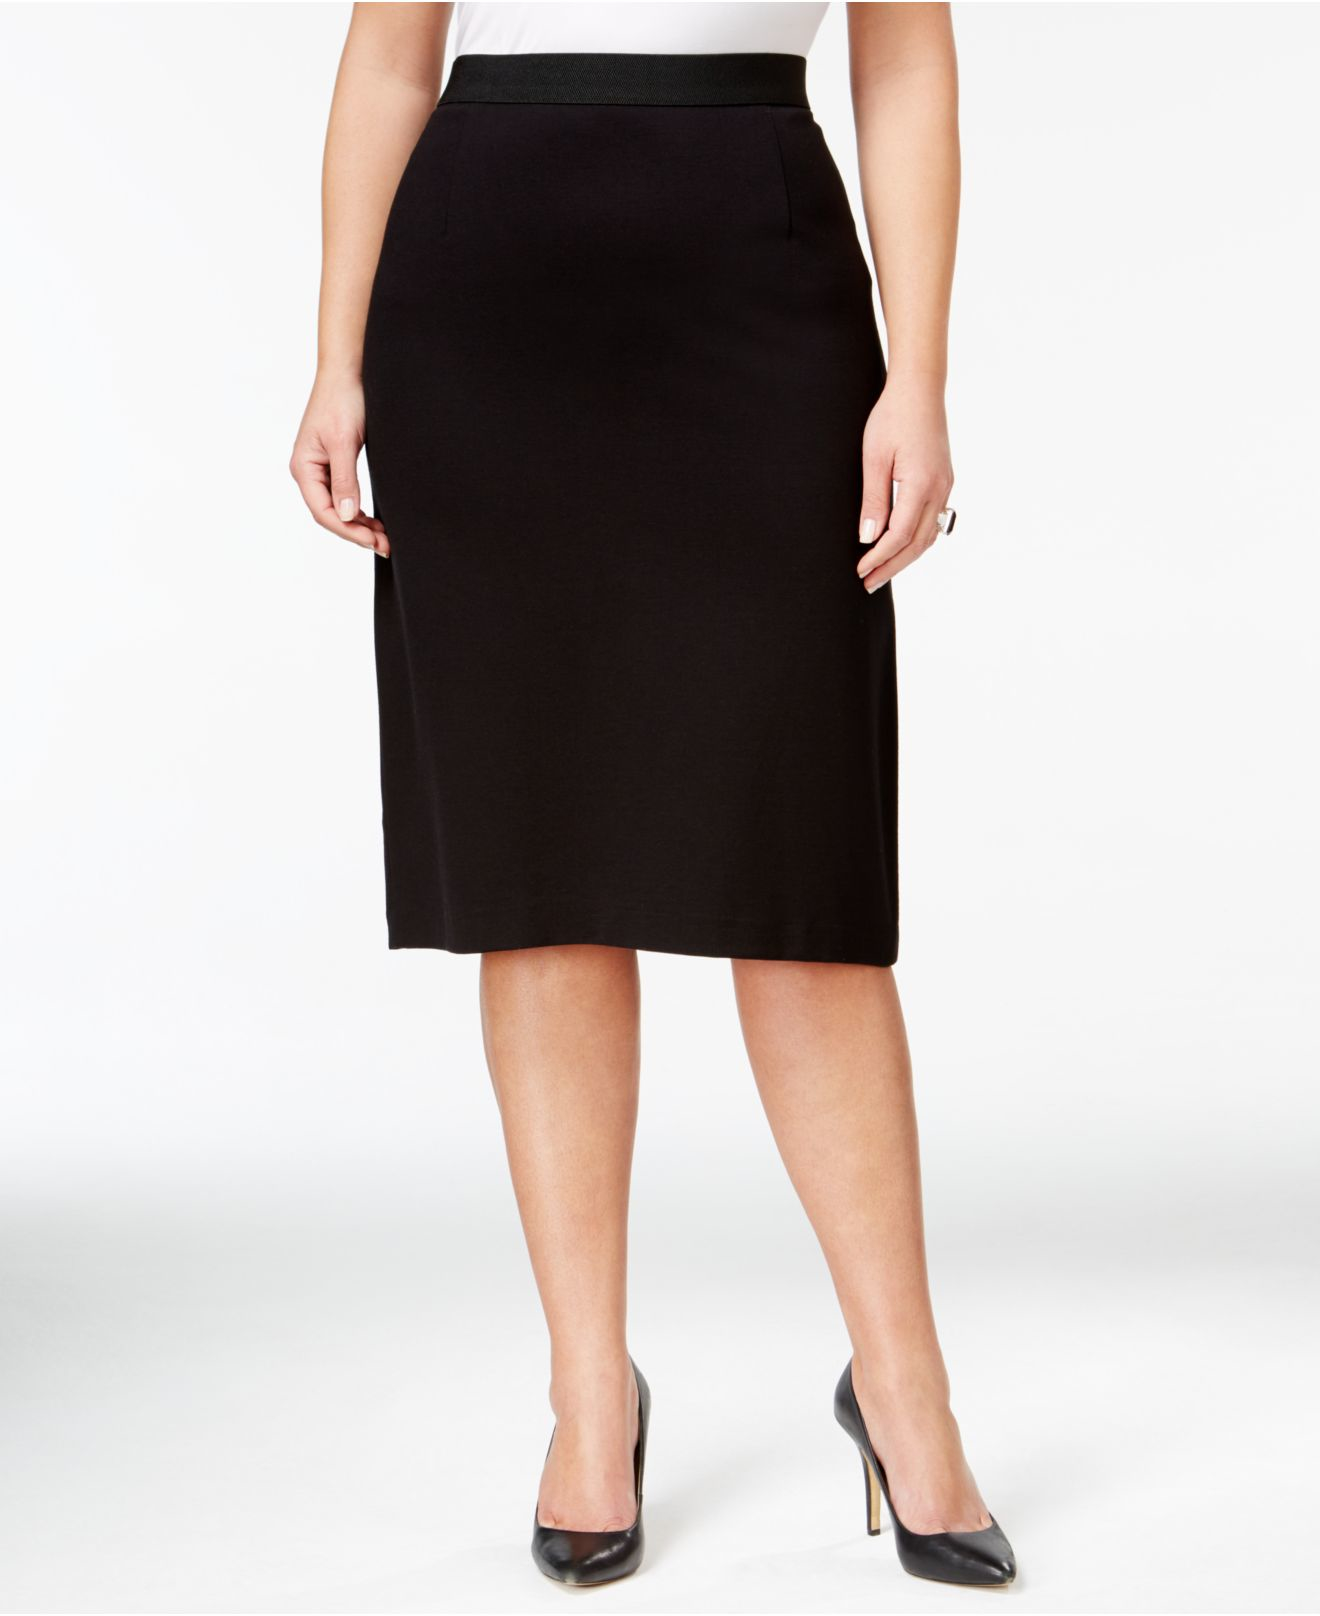 108f942e228 Lyst - Tahari Plus Size Below-knee Pencil Skirt in Black